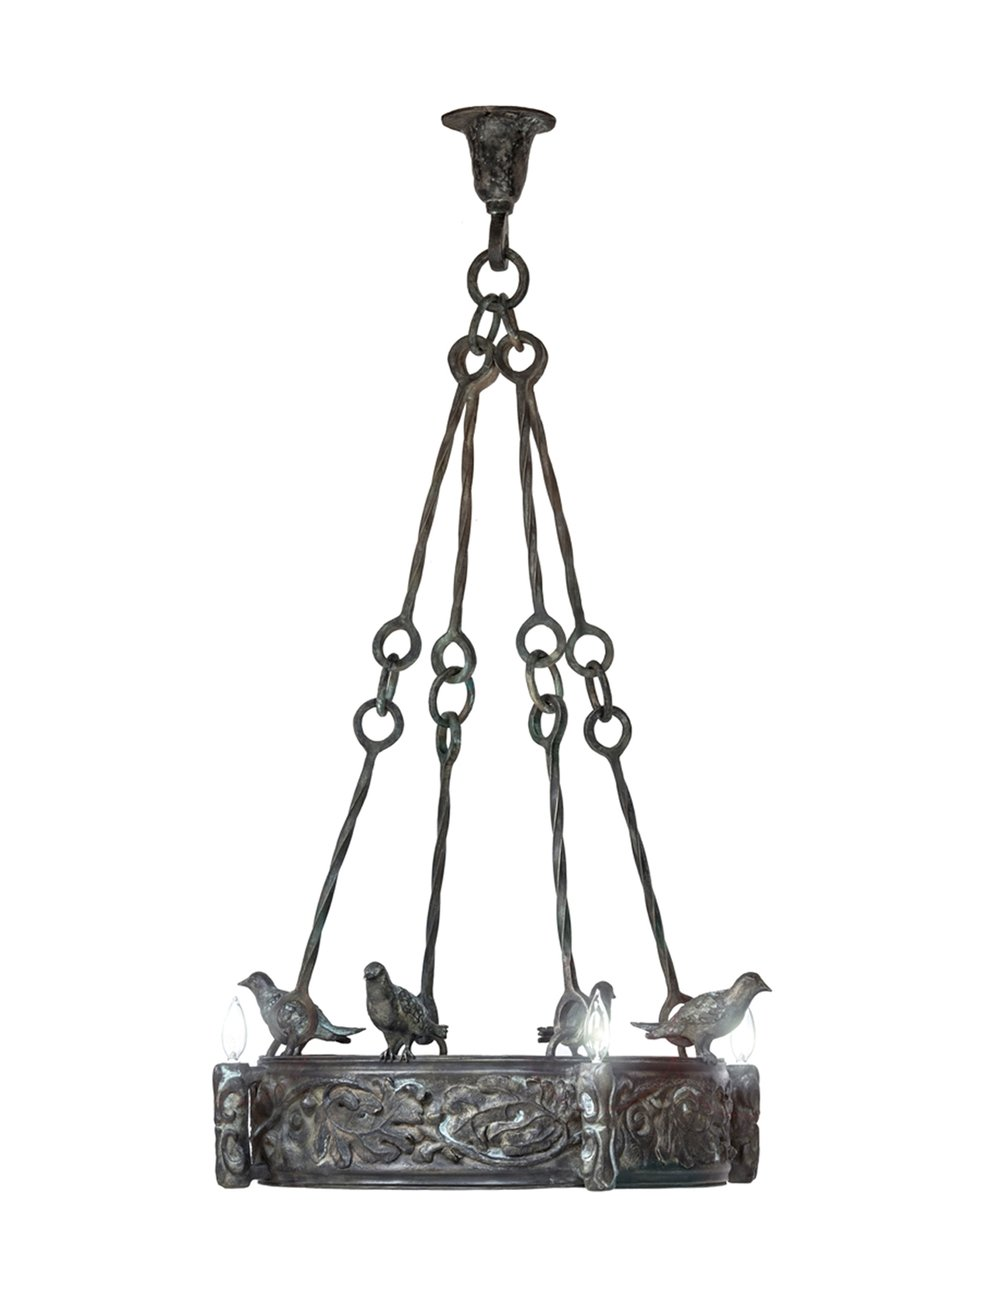 Blue Bird and Oak Leaf Chandelier , 2013, Bronze, Limited Edition of 8, 52 x 32 x 32 inches